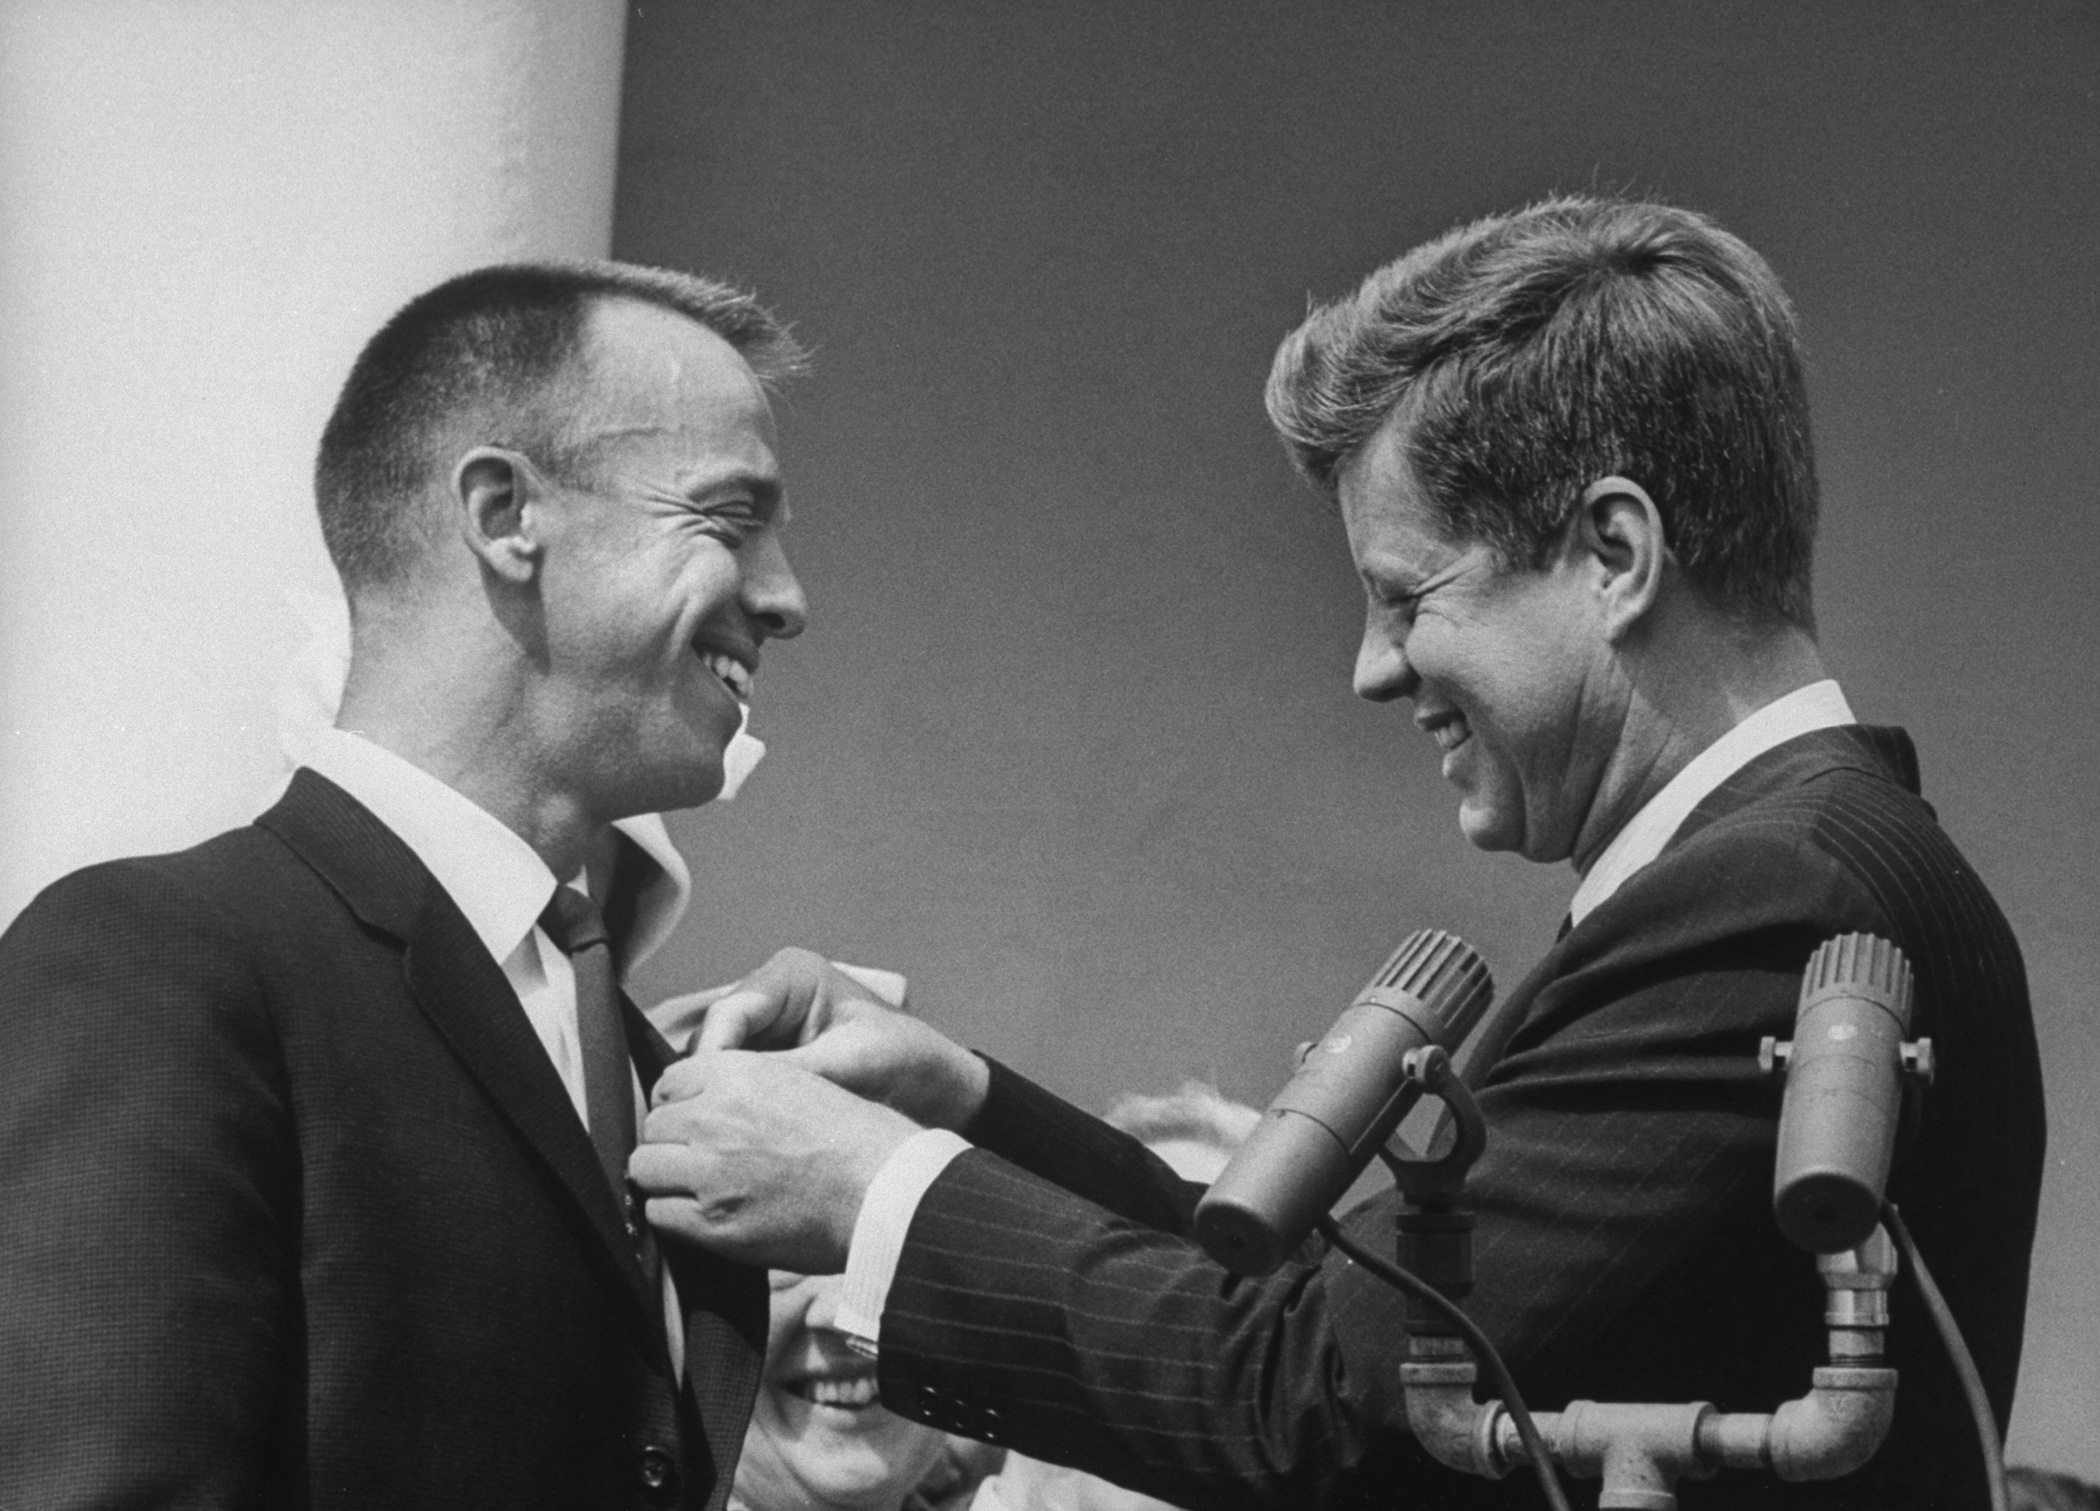 <b> Alan Shepard and JFK, 1961</b> Astronaut Alan B. Shepard receiving an award from President John F. Kennedy.